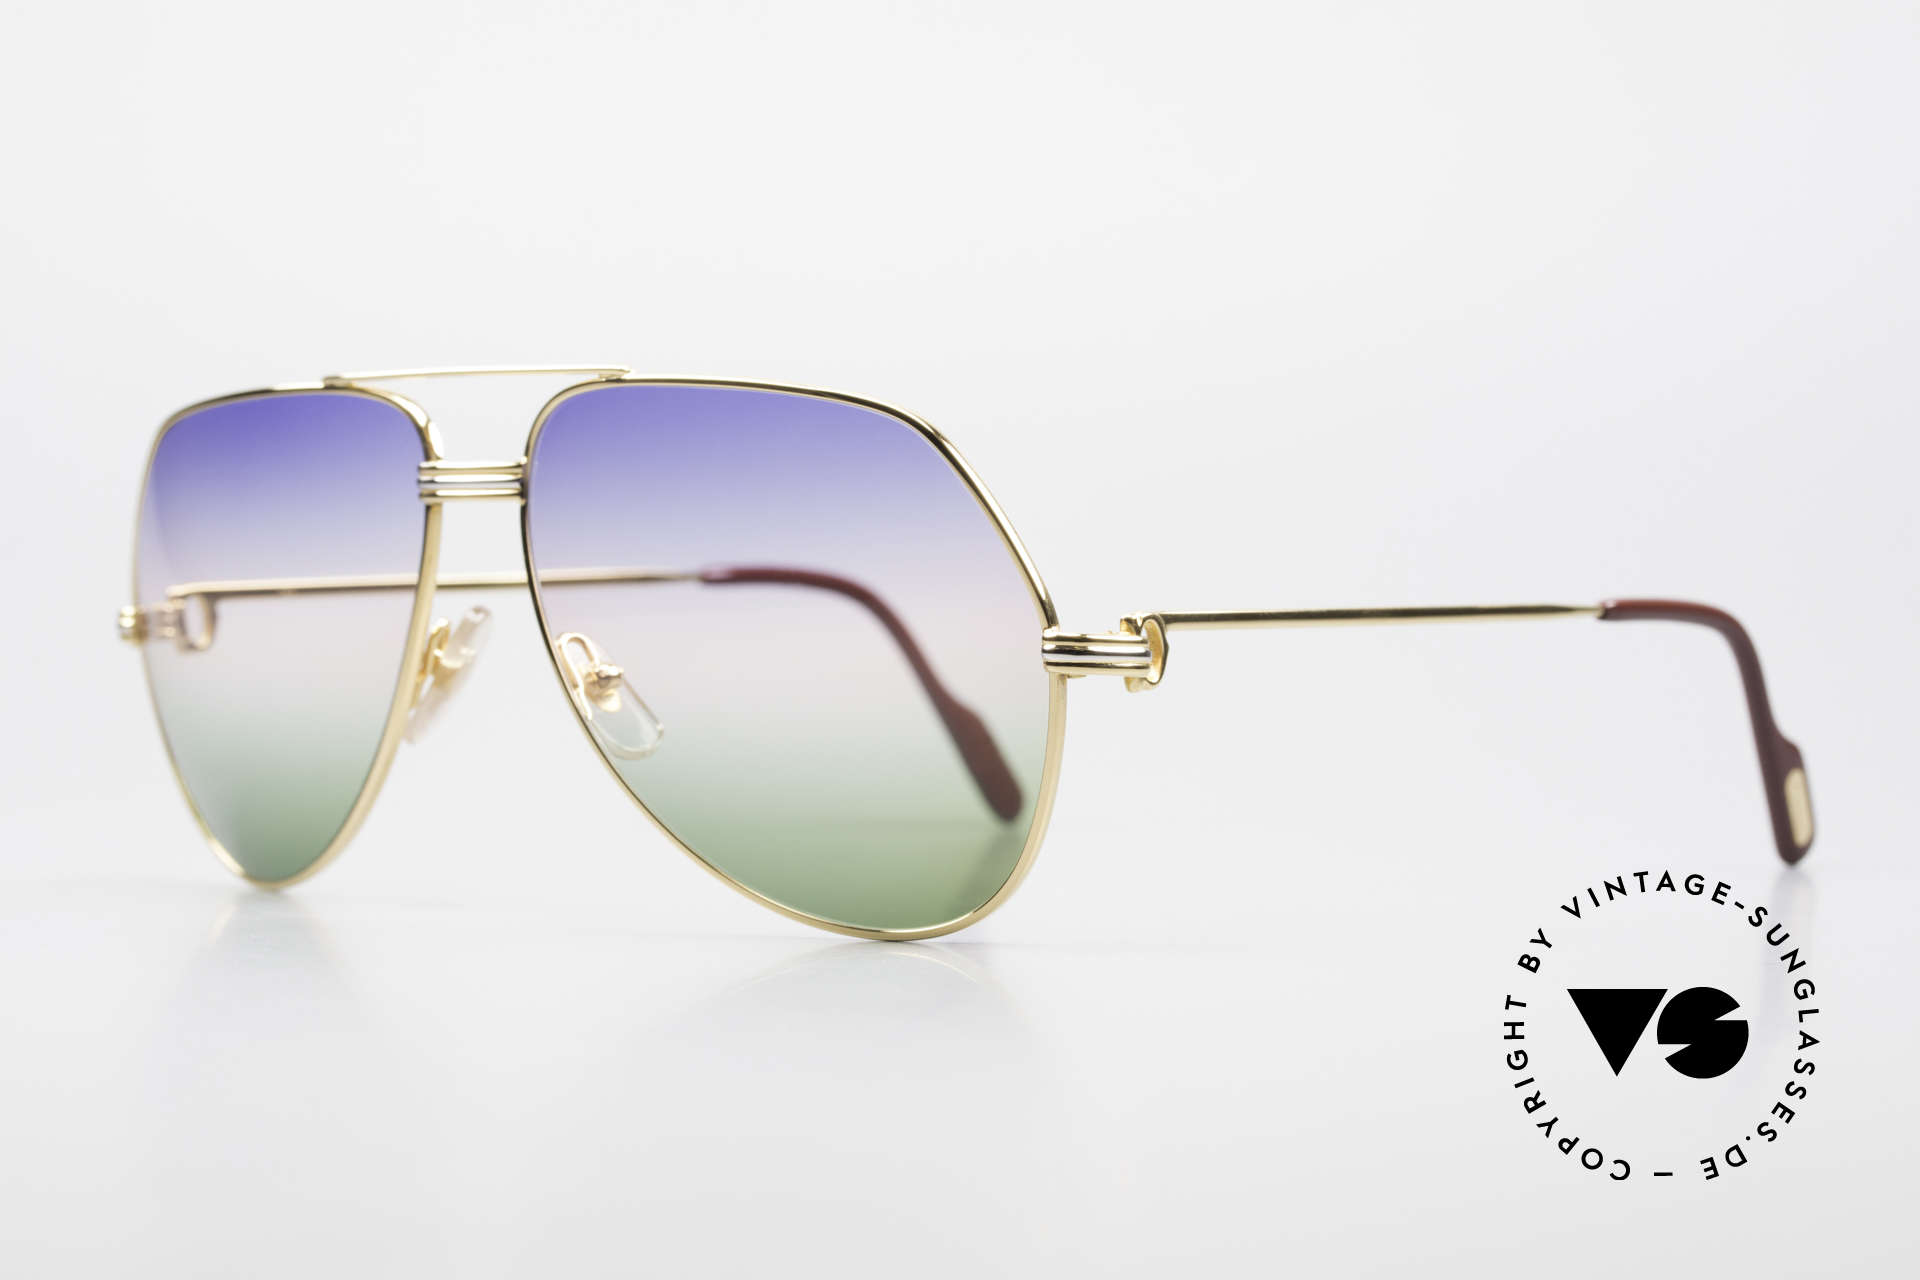 Cartier Vendome LC - L Rare Luxury Sunglasses 80's, here with Louis Cartier decor in LARGE size 62-14, 140, Made for Men